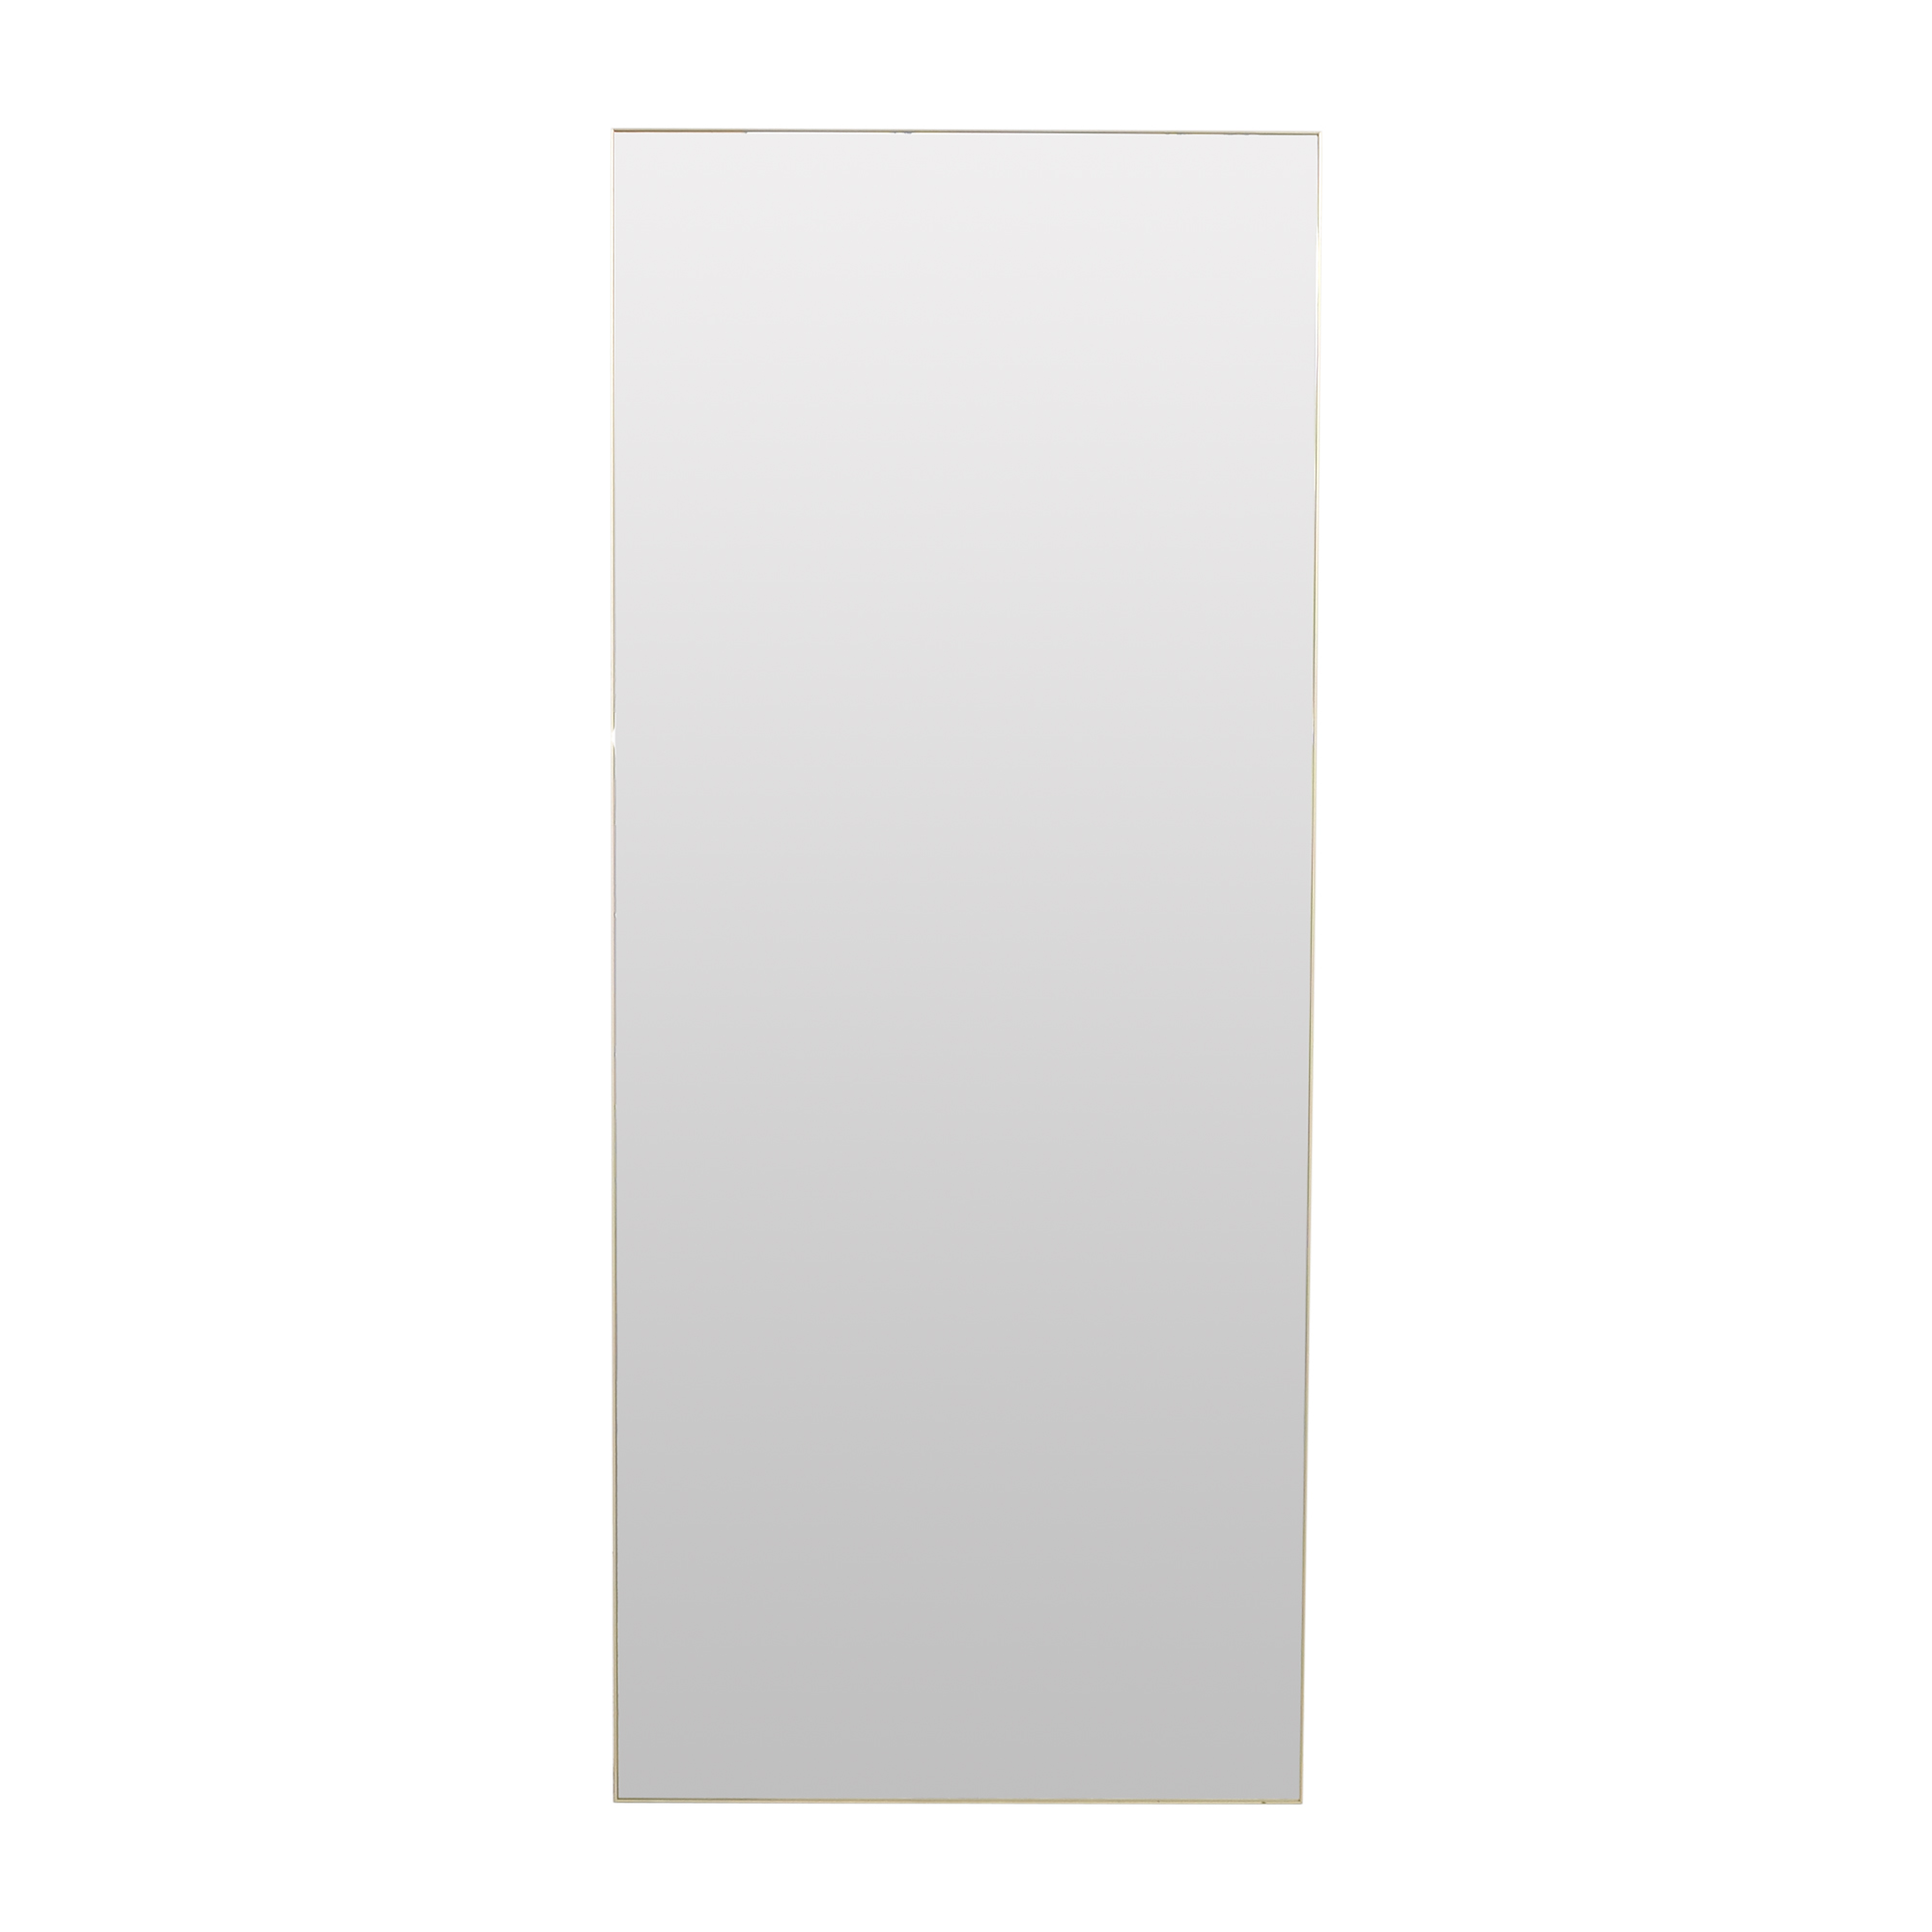 CB2 CB2 Infinity Floor Mirror gold